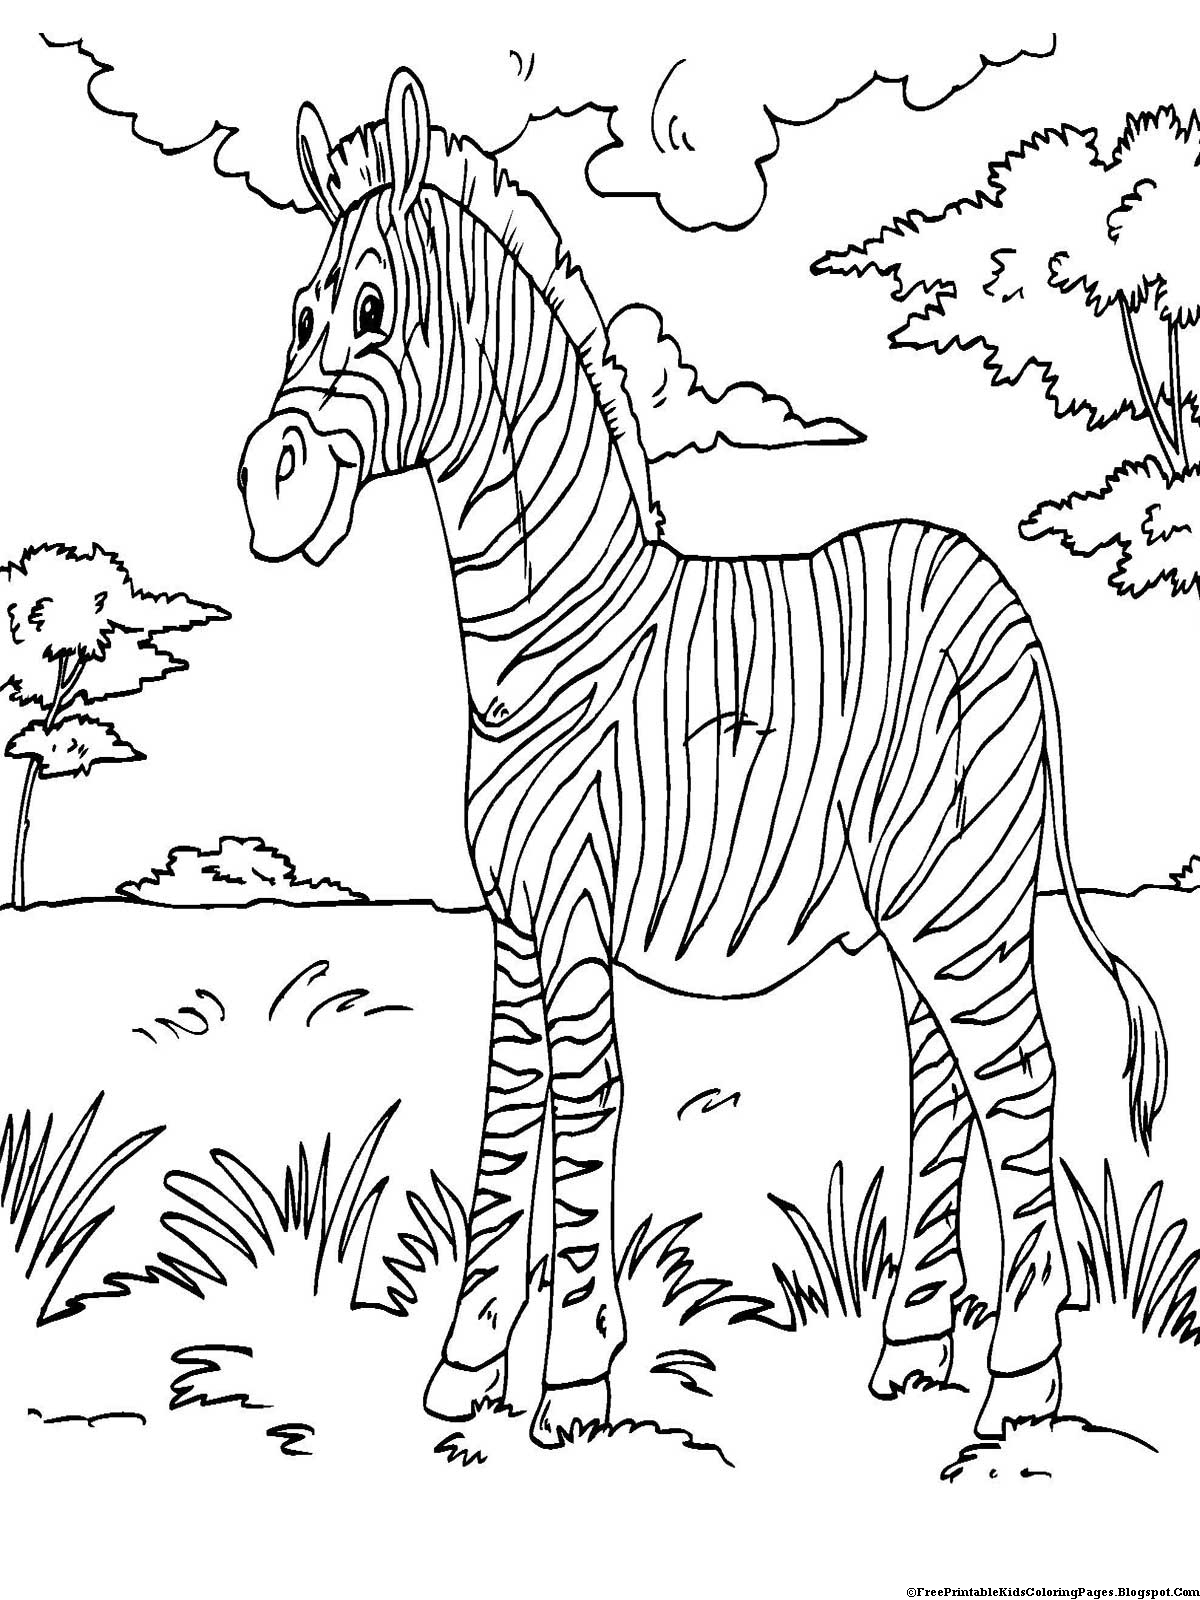 color sheets printable zebra coloring pages free printable kids coloring pages printable color sheets